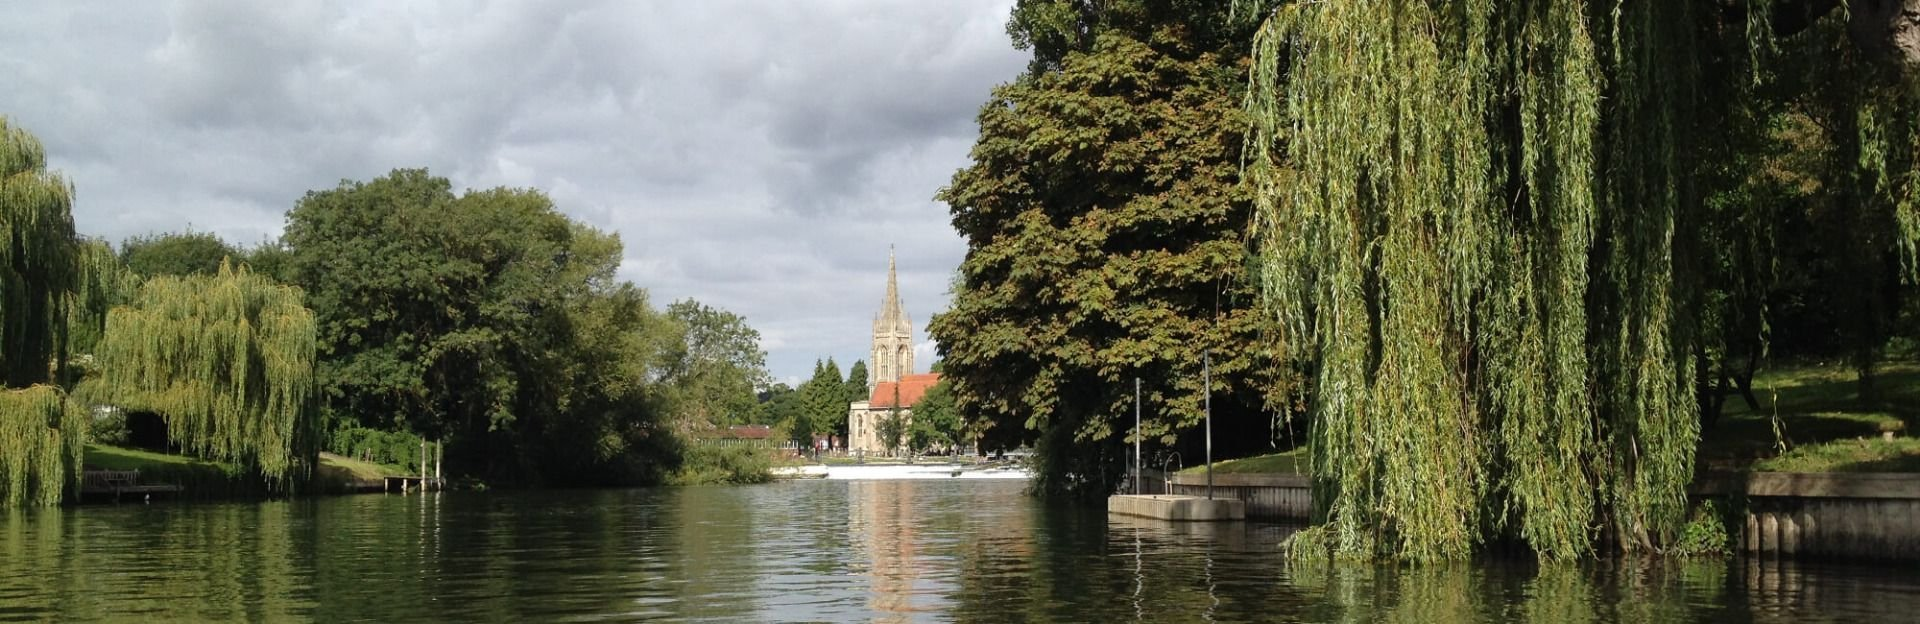 Marlow on the River Thames